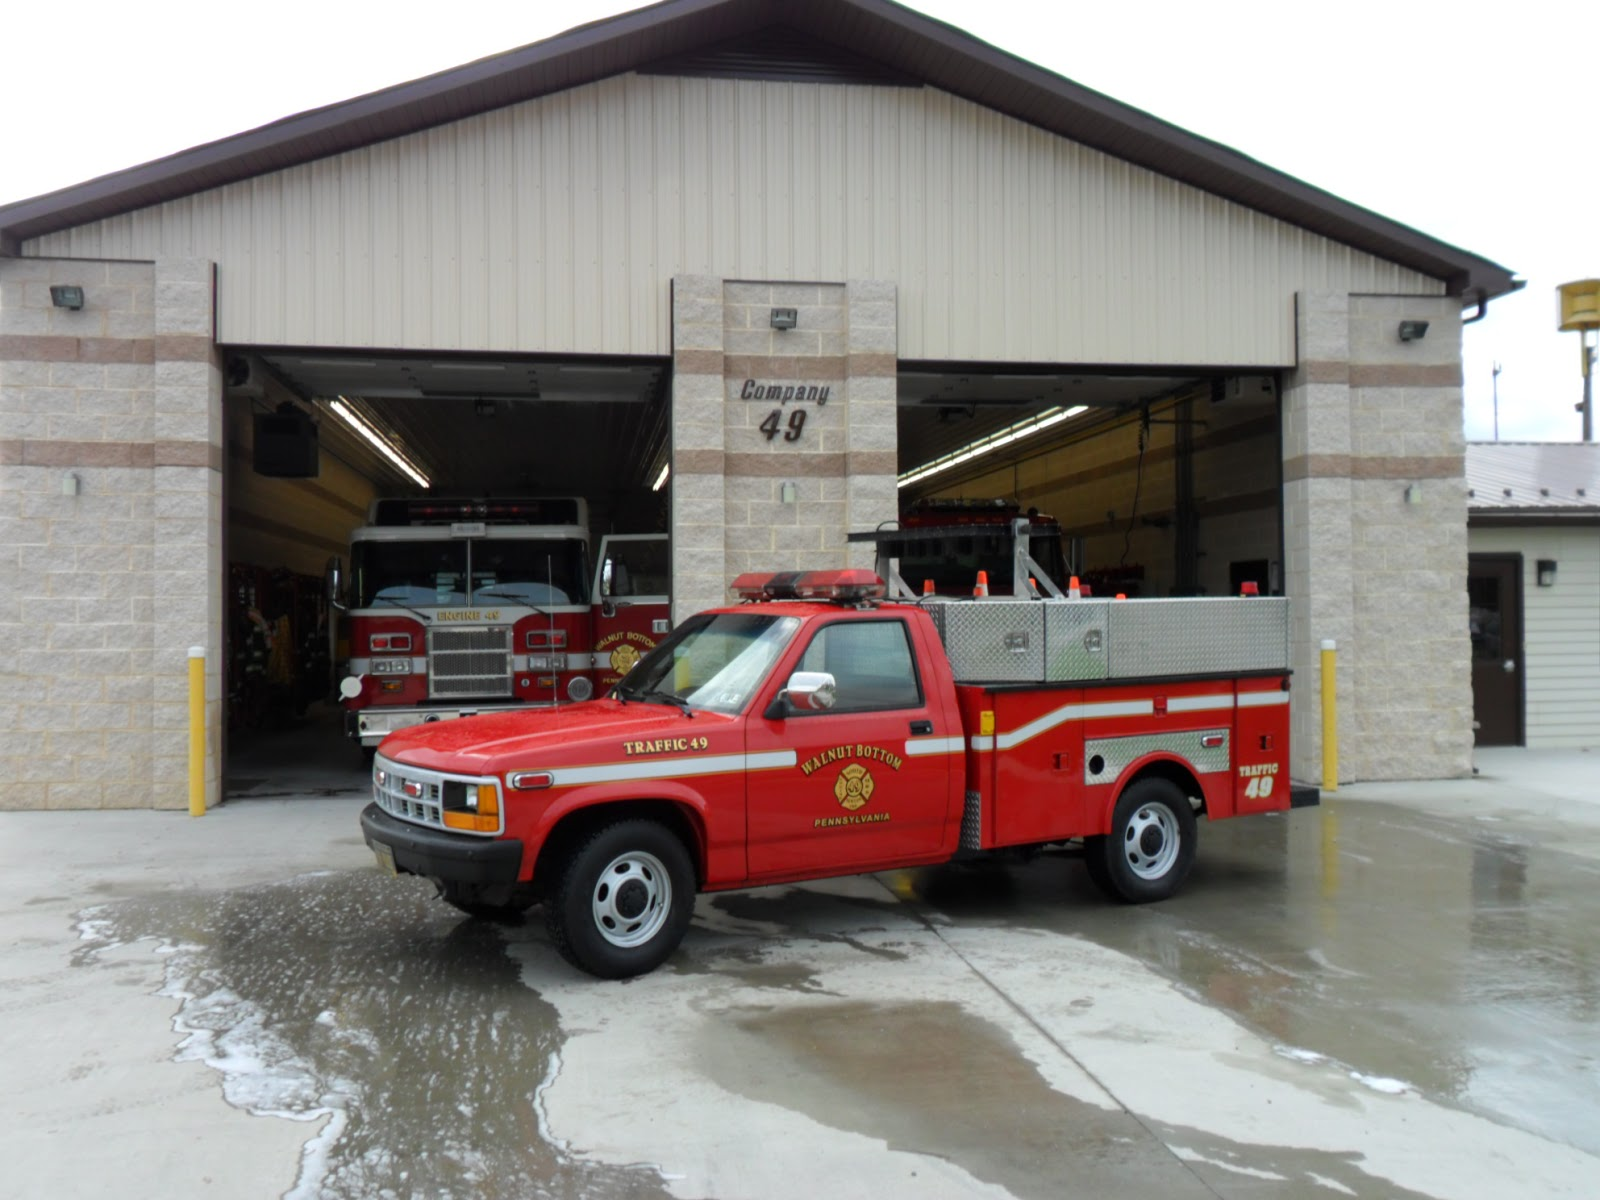 For more info visit our Fire Company website at www.walnutbottomfire.com